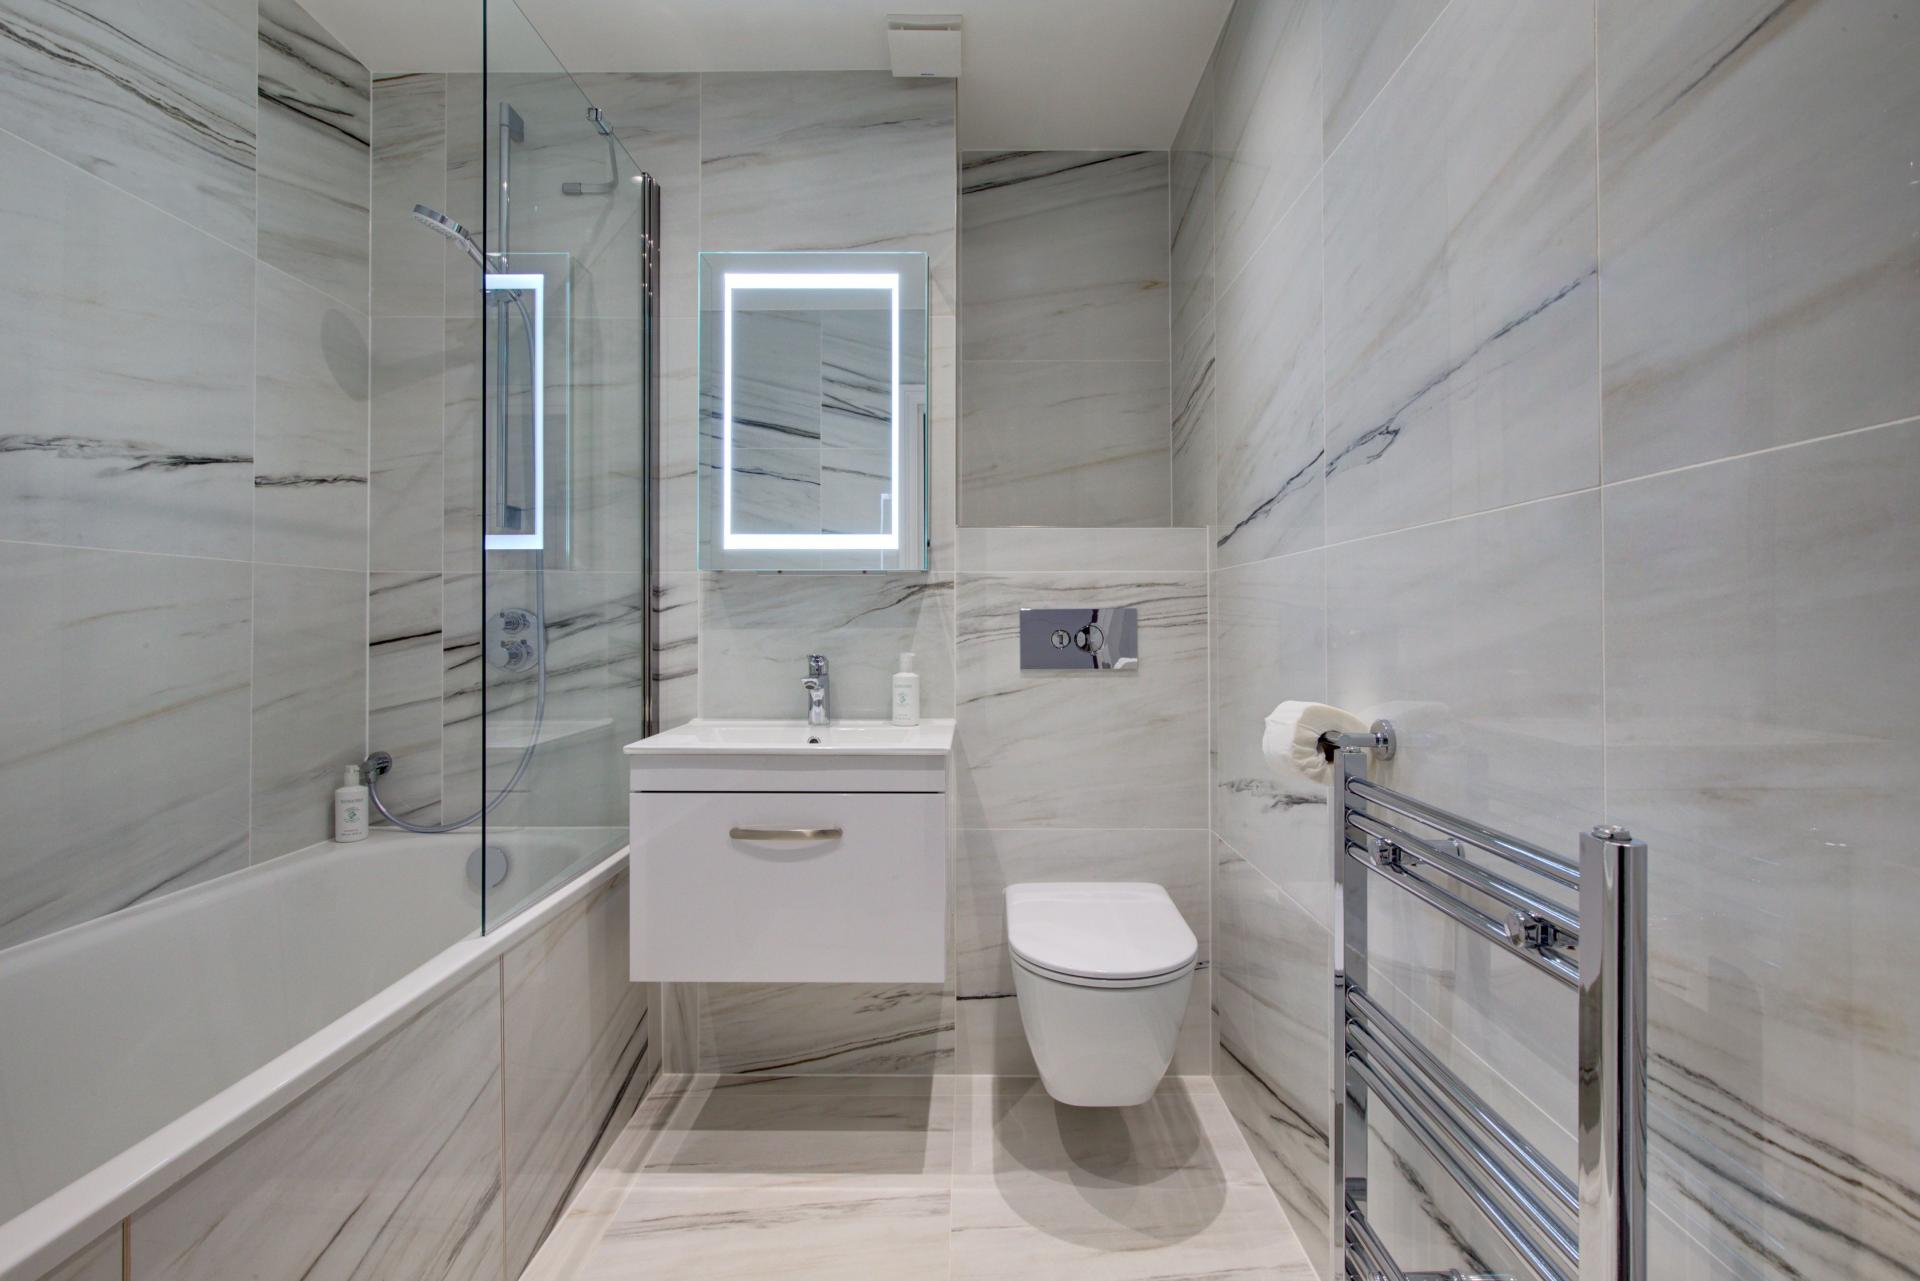 Tiled Bathroom at Collingham Serviced Apartments, Kensington, London